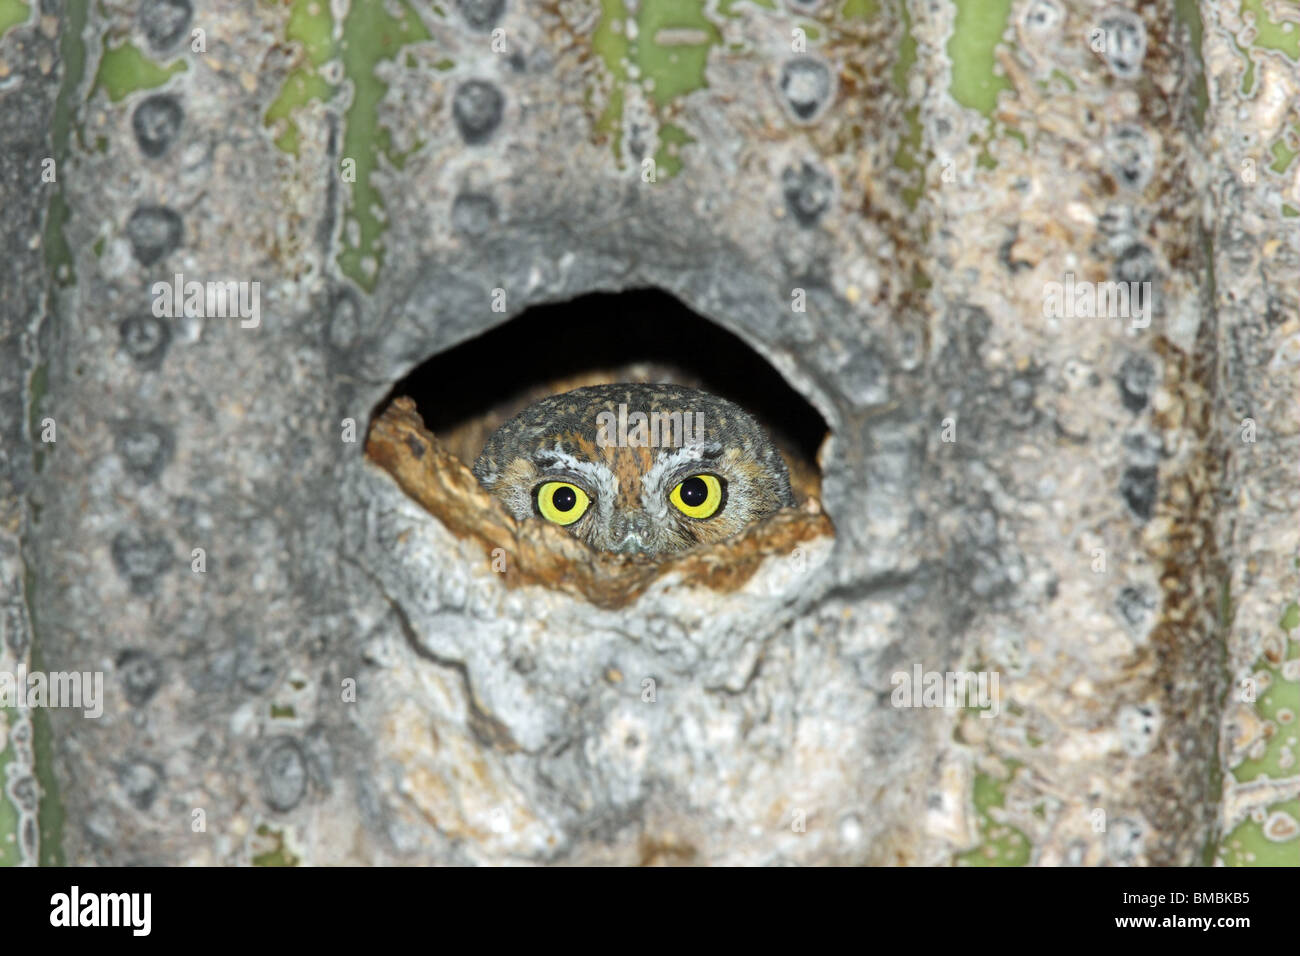 Elf Owl female peering from nest hole in Saguaro cactus. - Stock Image